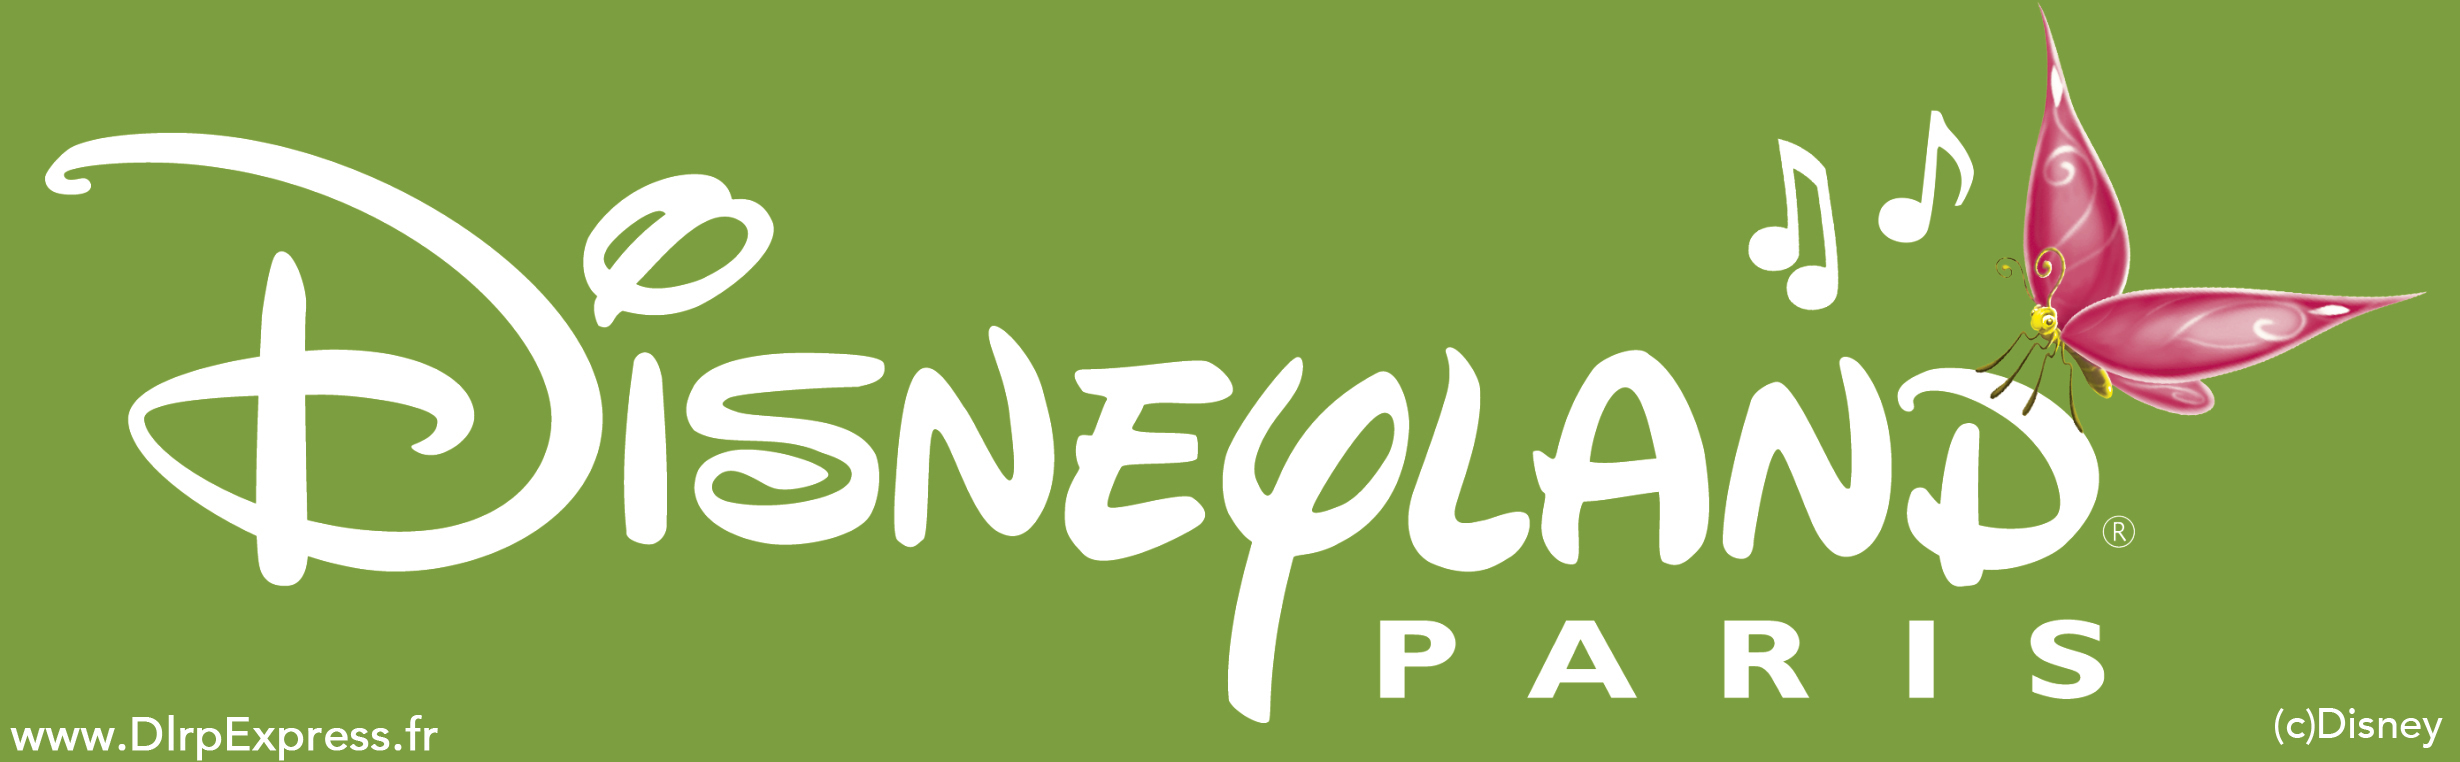 Green Disneyland Paris logo with butterfly. Spring 2014